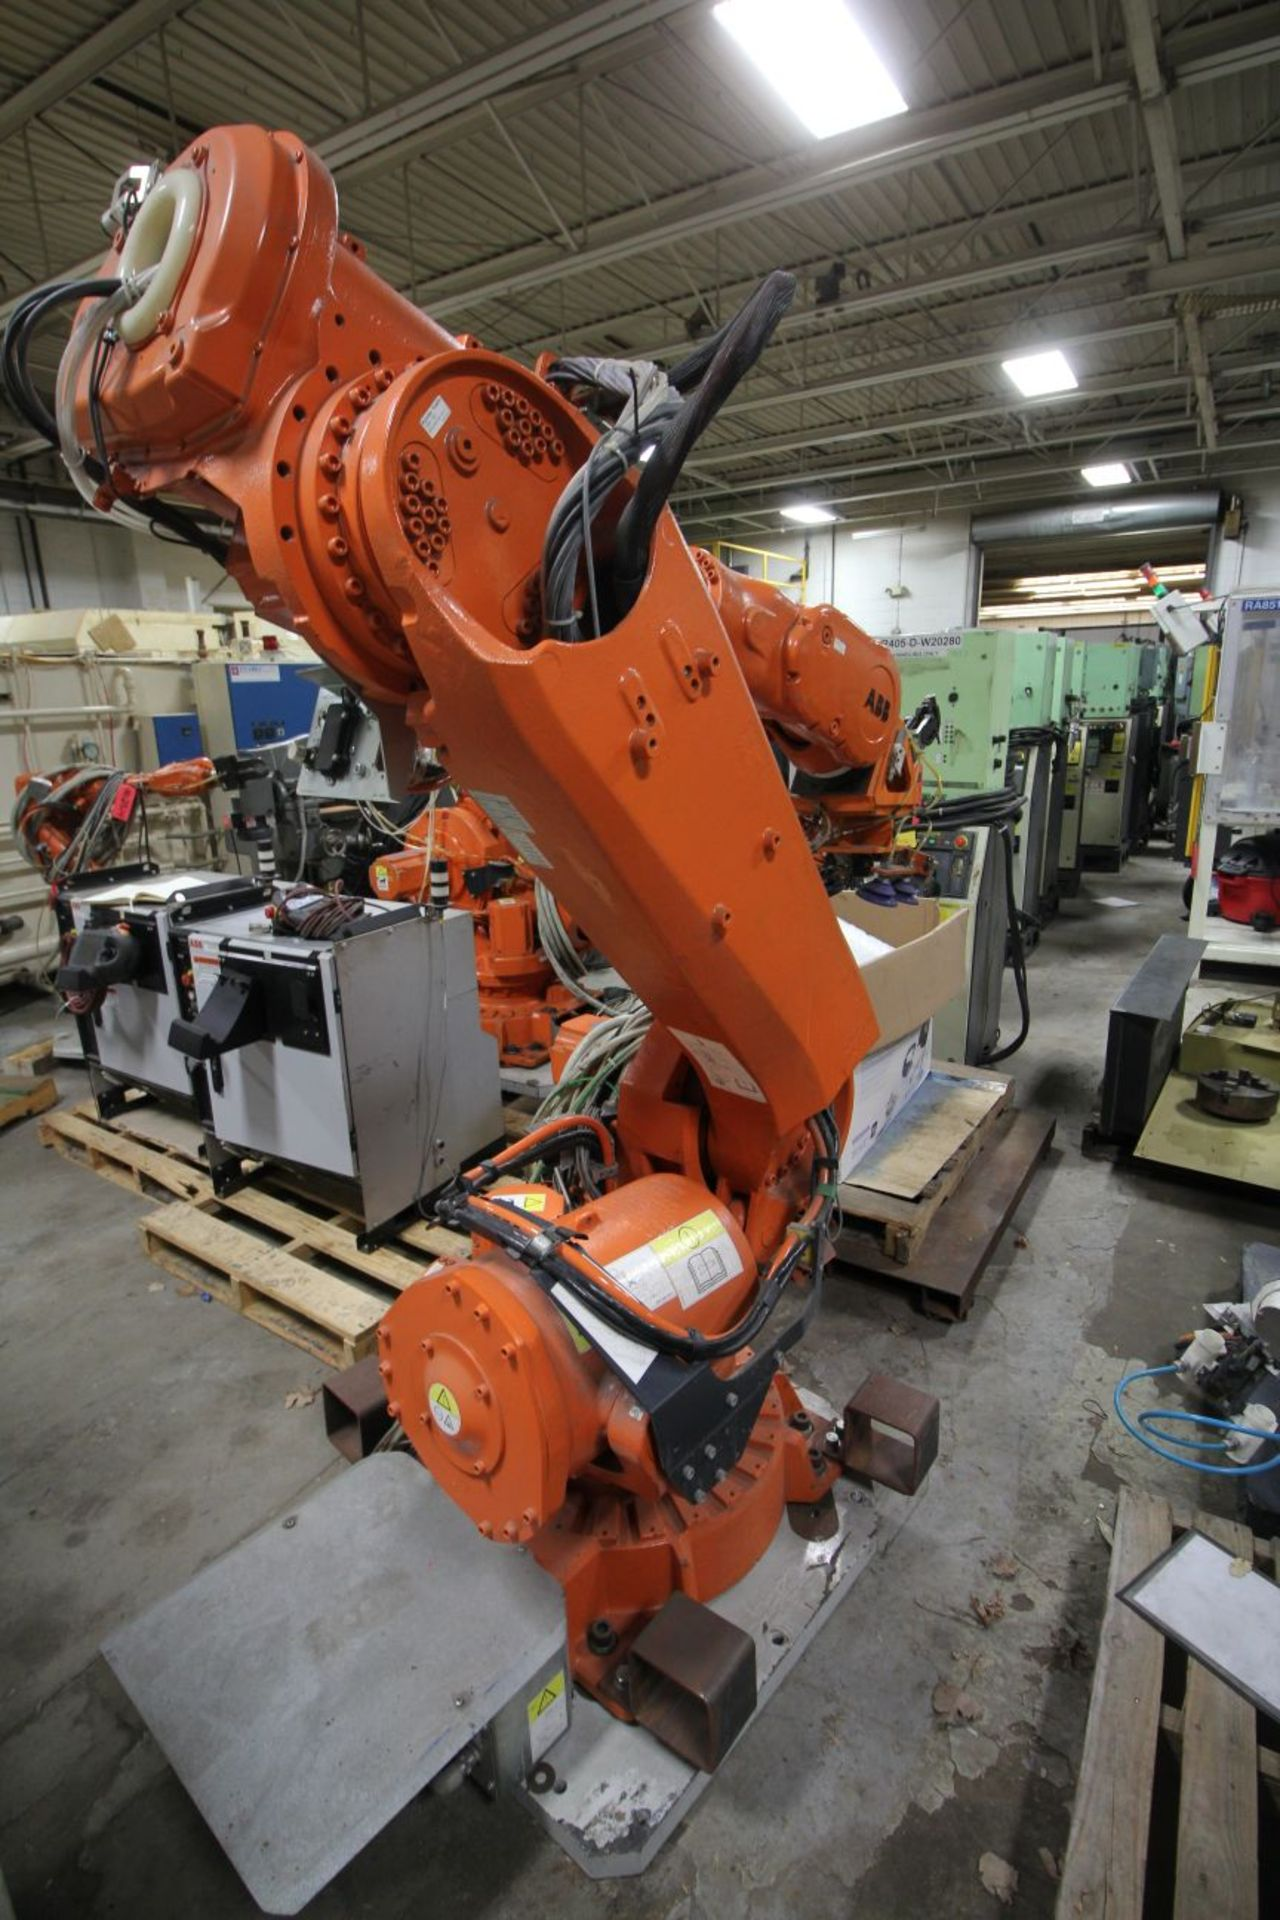 Lot 3 - ABB ROBOT IRB 6640 2.75/205KG WITH IRC5 CONTROLS, YEAR 2013 SN 501477